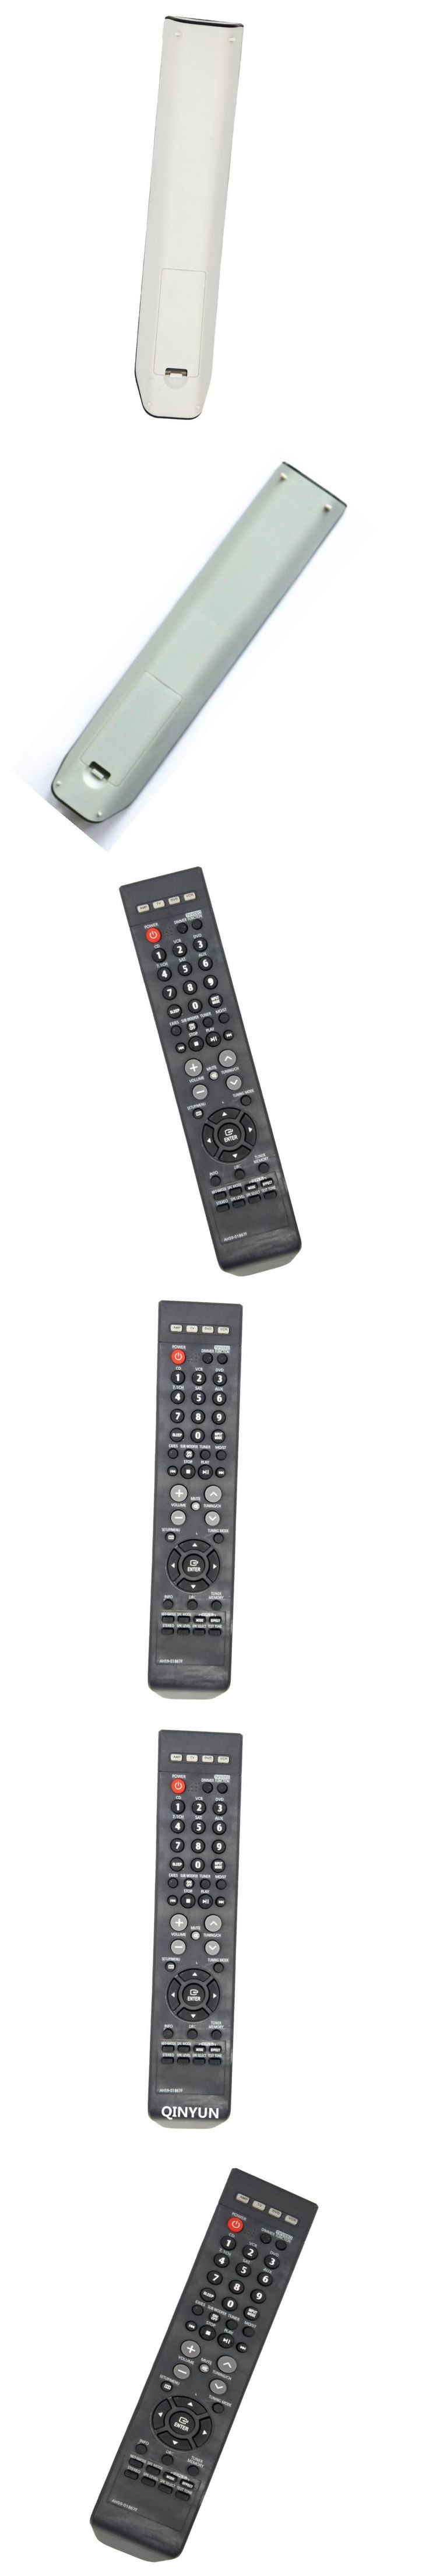 AH59-01867F Remote Control For Samsung Home Theater/DVD YSP4000BL AVR720 HT-AS720